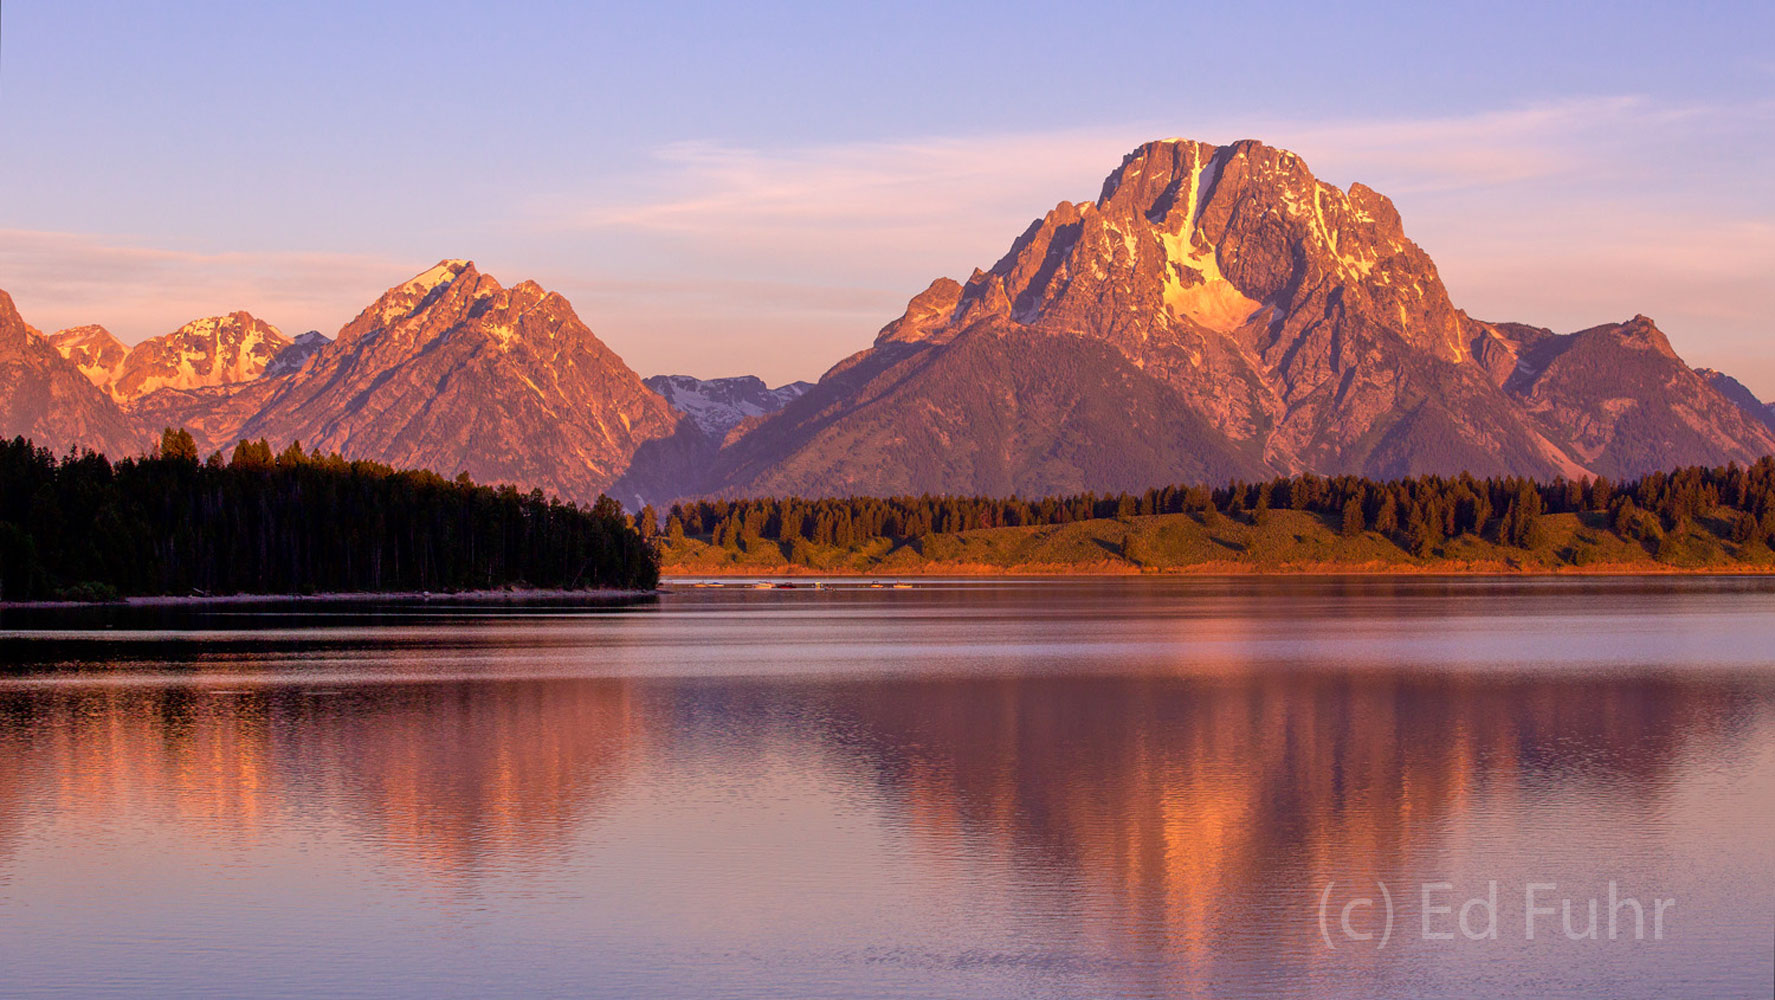 grand teton national park, oxbow bend, sunrise, photograph, image, 2013, Tetons, Grand Teton, photo